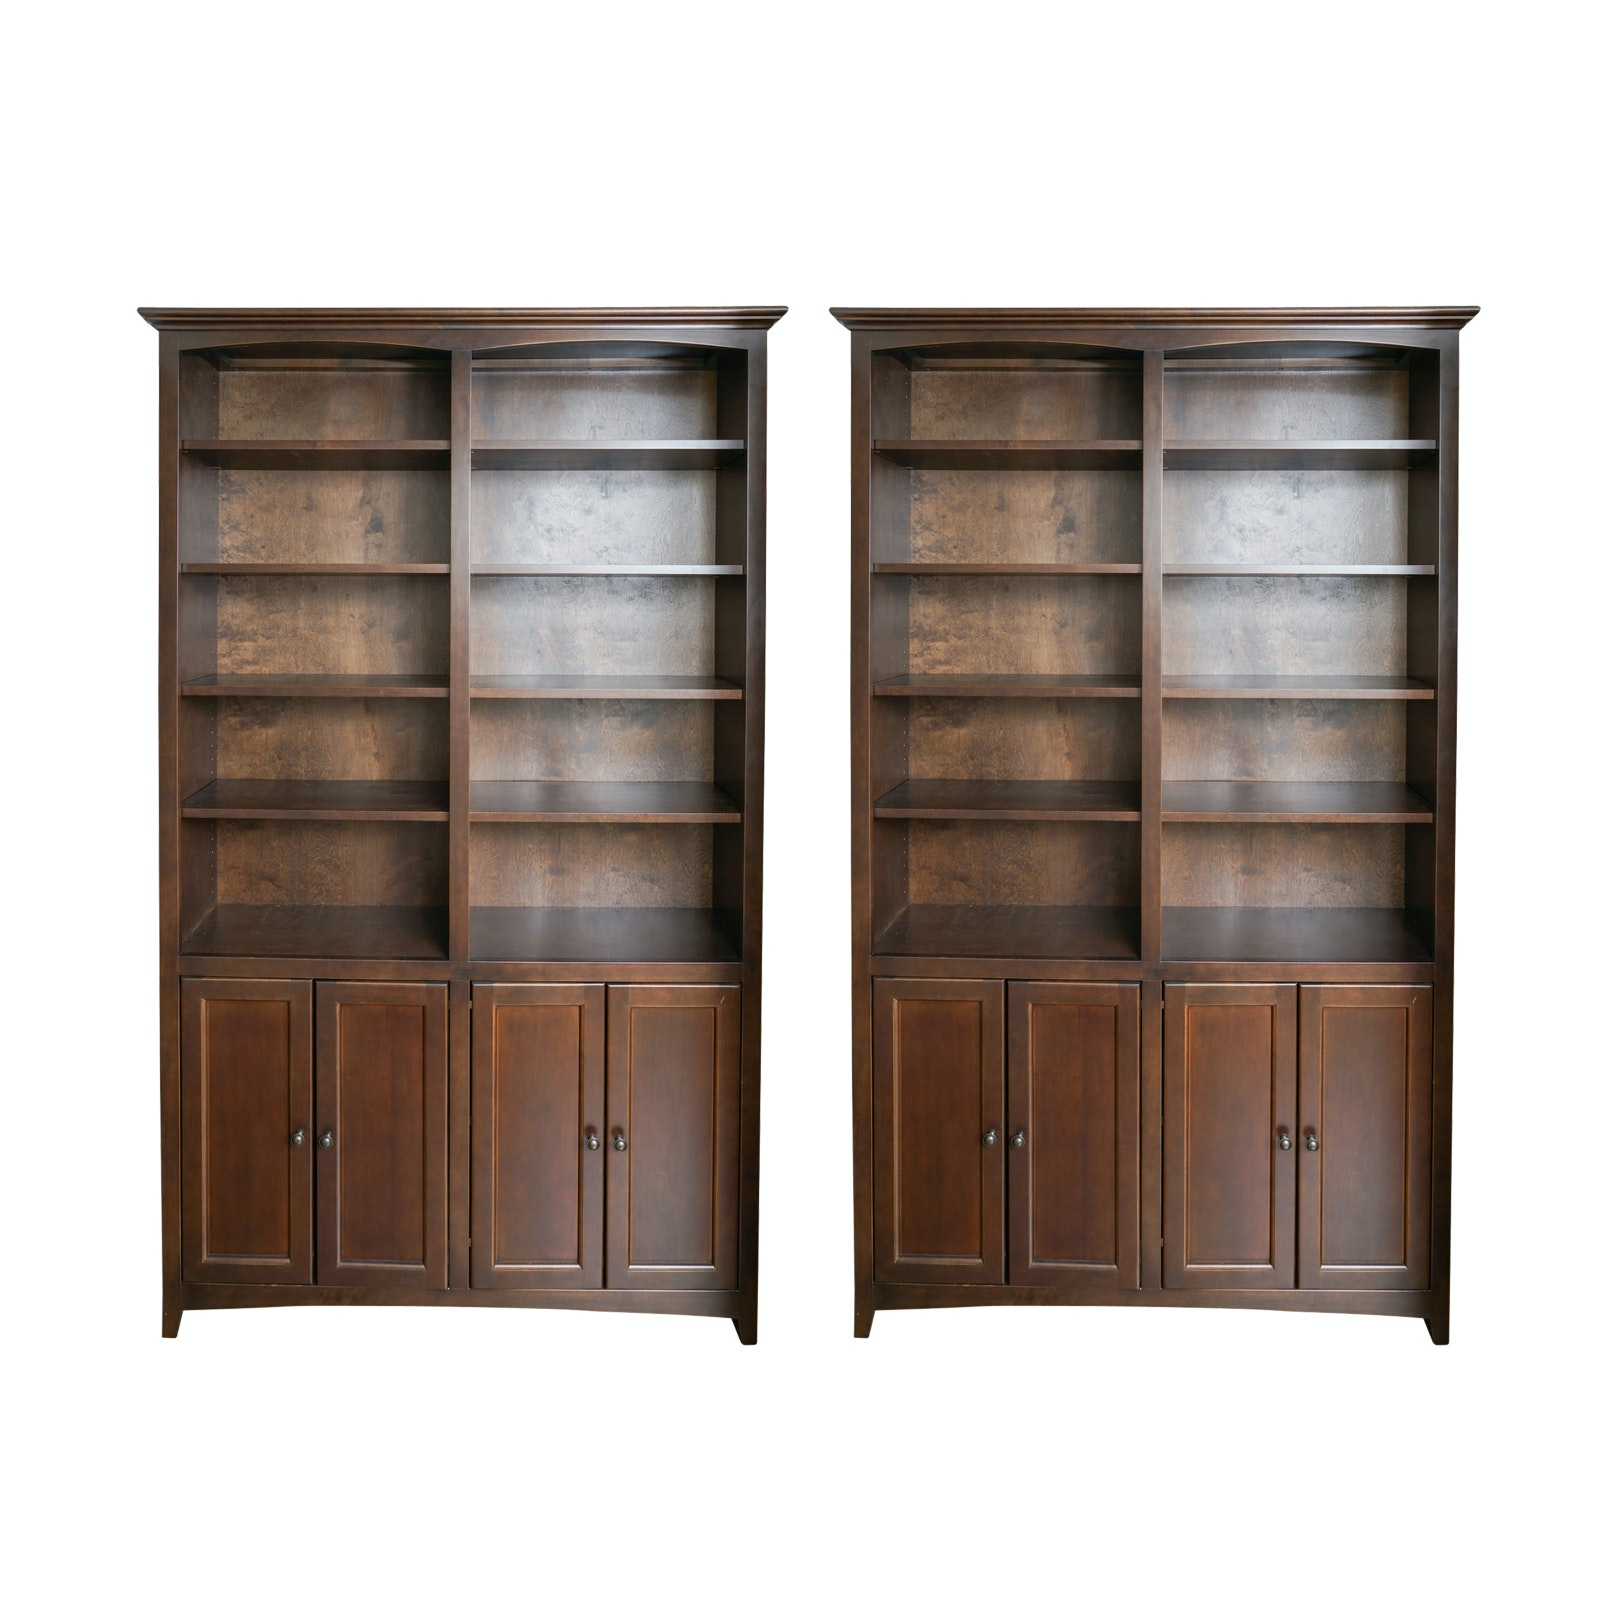 Pair of Contemporary Wooden Bookcases by Whittier Furniture